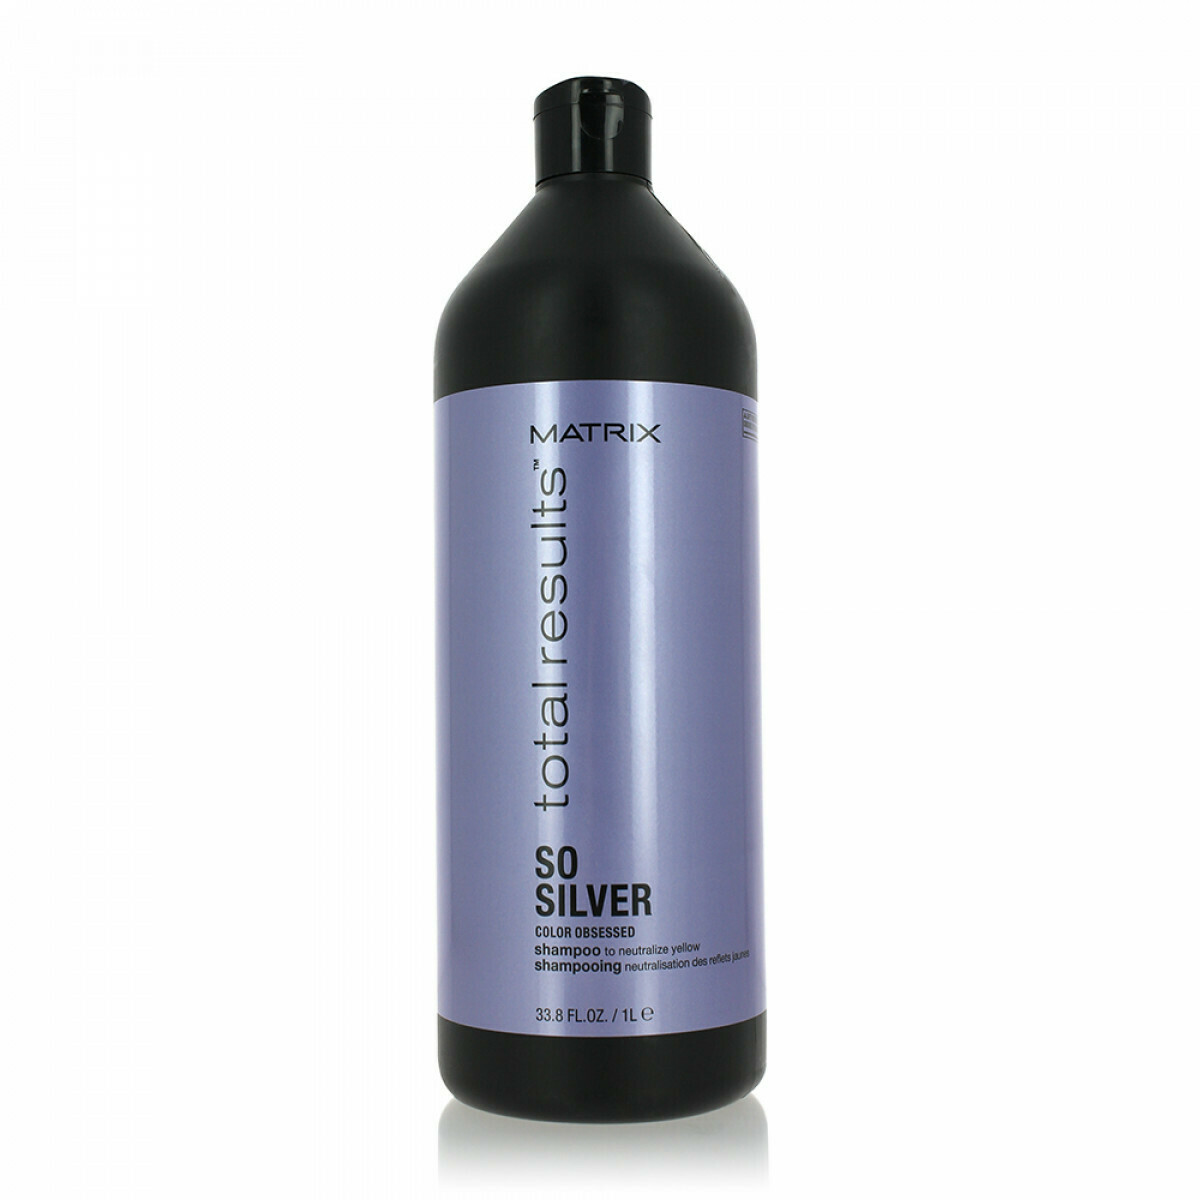 Shampoing neutralisant - 1000ml - So Silver, Total Results - Blonds et décolorés, Gris/blancs Matrix